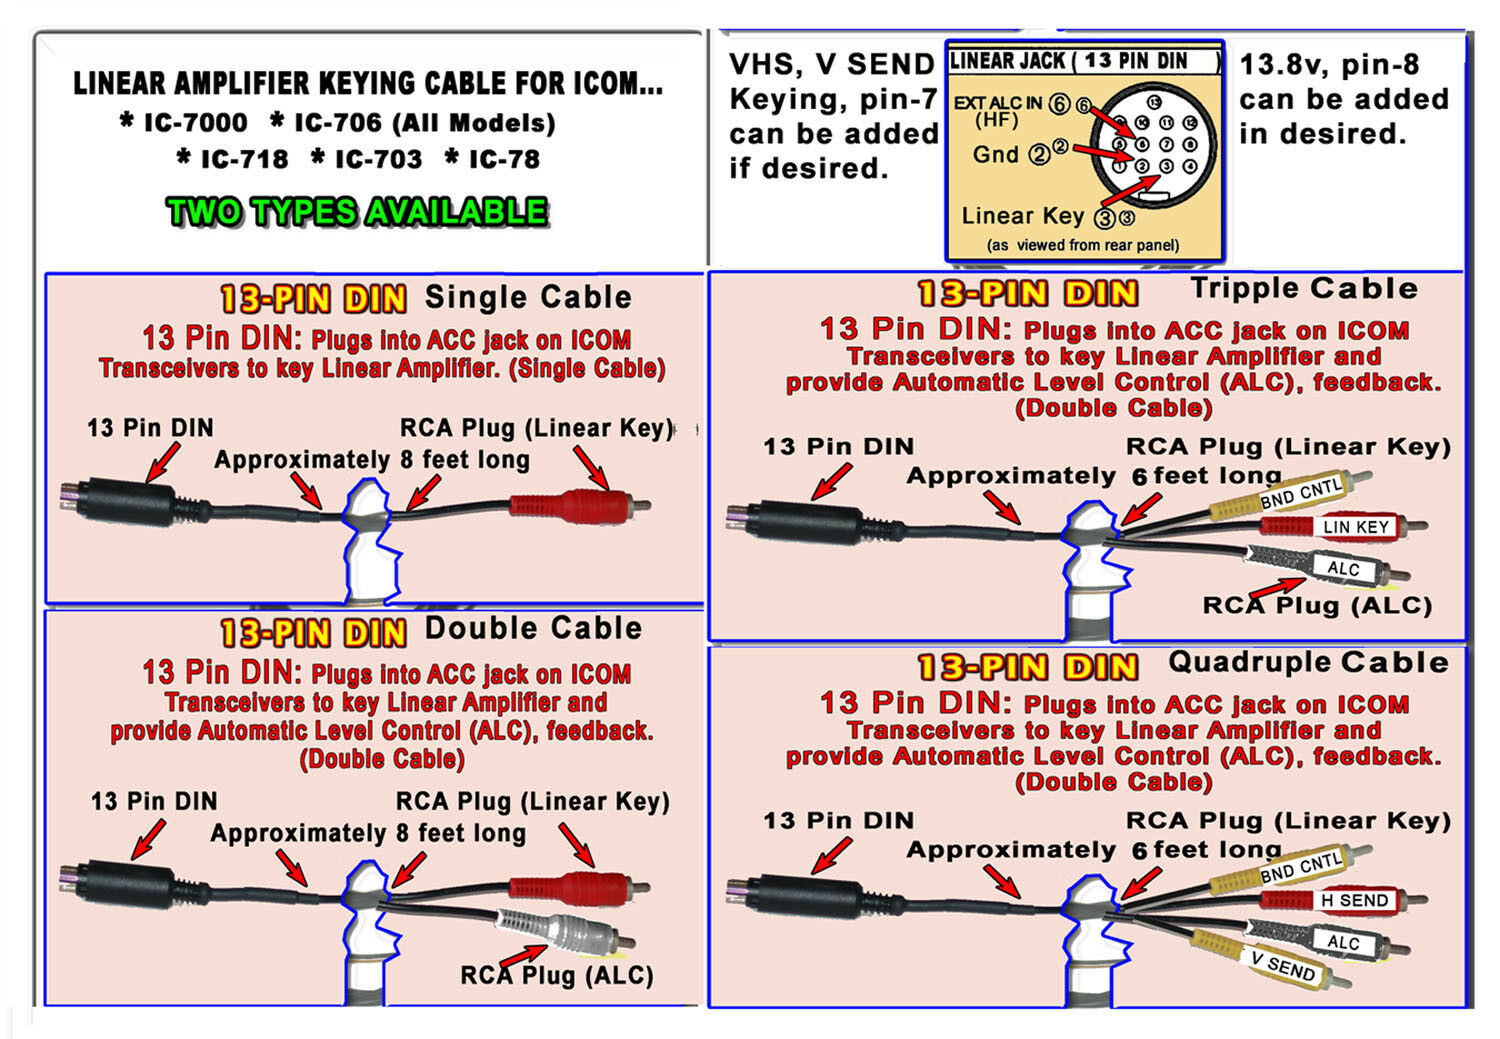 $_57 Xlr Bnc Wiring Diagram on bnc power diagram, vga to cat 5 diagram, bnc adapter wire diagram for, bnc antenna, connector bnc connection diagram, bnc connector layout, cat 5e pinout diagram, bnc cover, viewsonic power supply diagram, bnc plug, balanced rca jack diagram, rca to vga pin diagram,